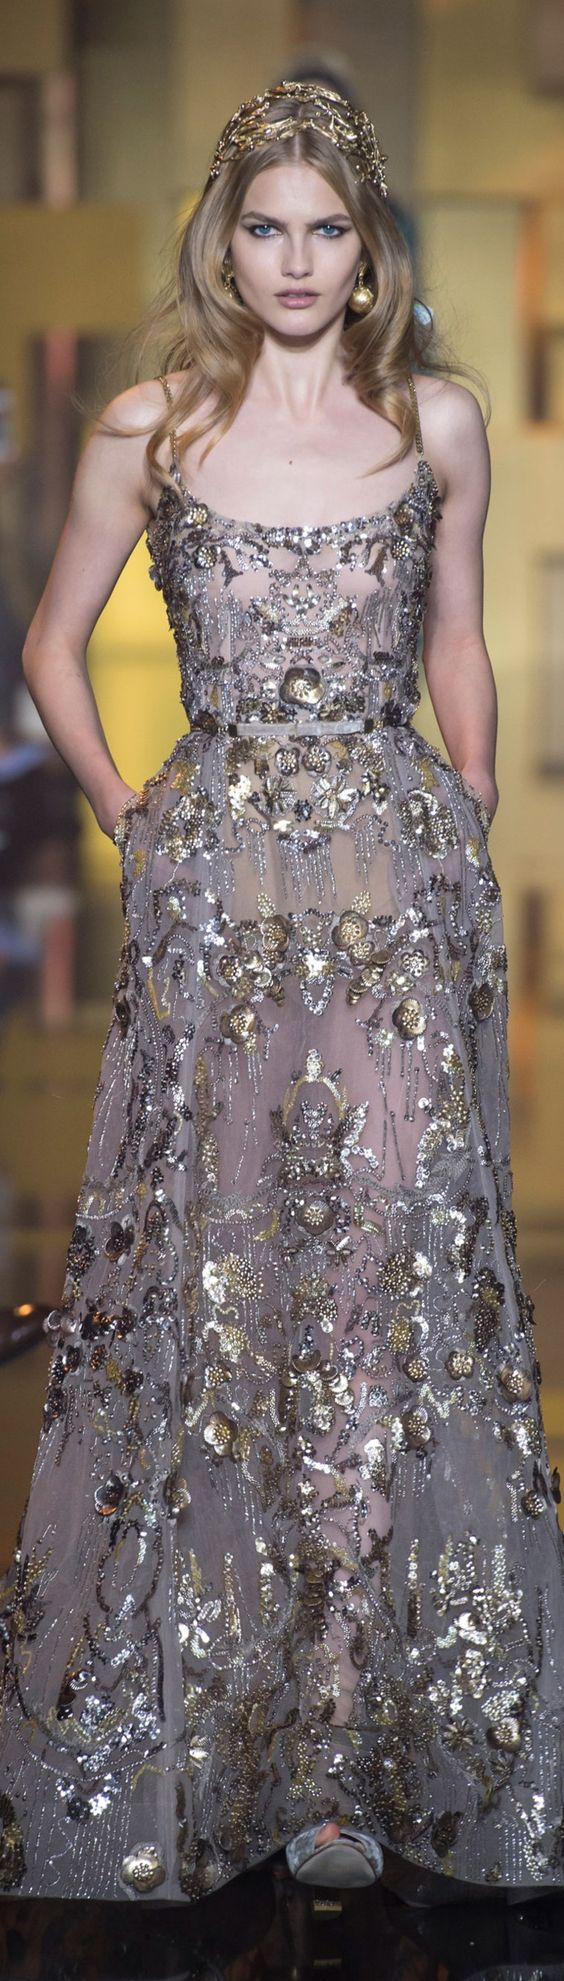 ❖ The Golden Girl with a sliver of Silver ⚡️ {gold&silver} ⚡️ Elie Saab FW…